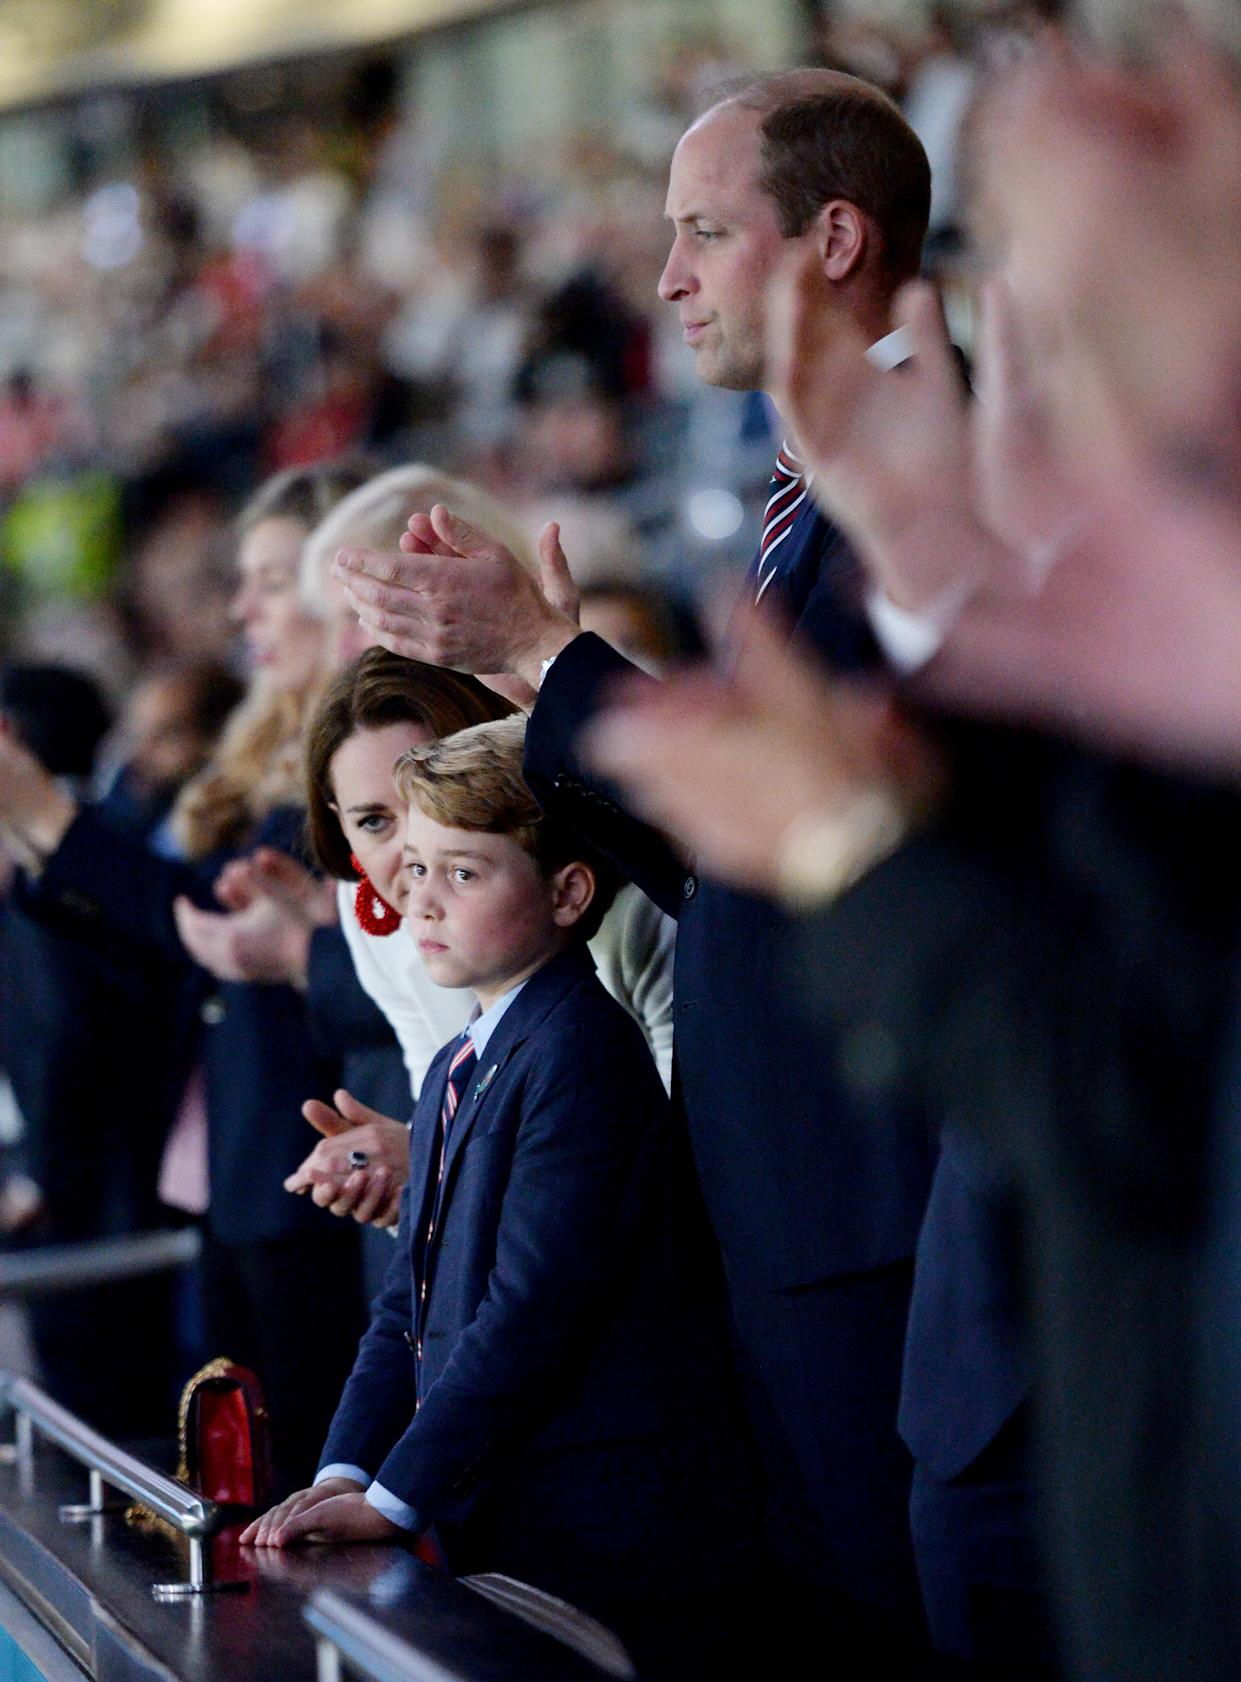 LONDON, ENGLAND - JULY 11: Prince George of Cambridge, Catherine, Duchess of Cambridge, and Prince William, Duke of Cambridge and President of the Football Association (FA) are seen in the stands prior to the UEFA Euro 2020 Championship Final between Italy and England at Wembley Stadium on July 11, 2021 in London, England. (Photo by Eamonn McCormack - UEFA/UEFA via Getty Images)